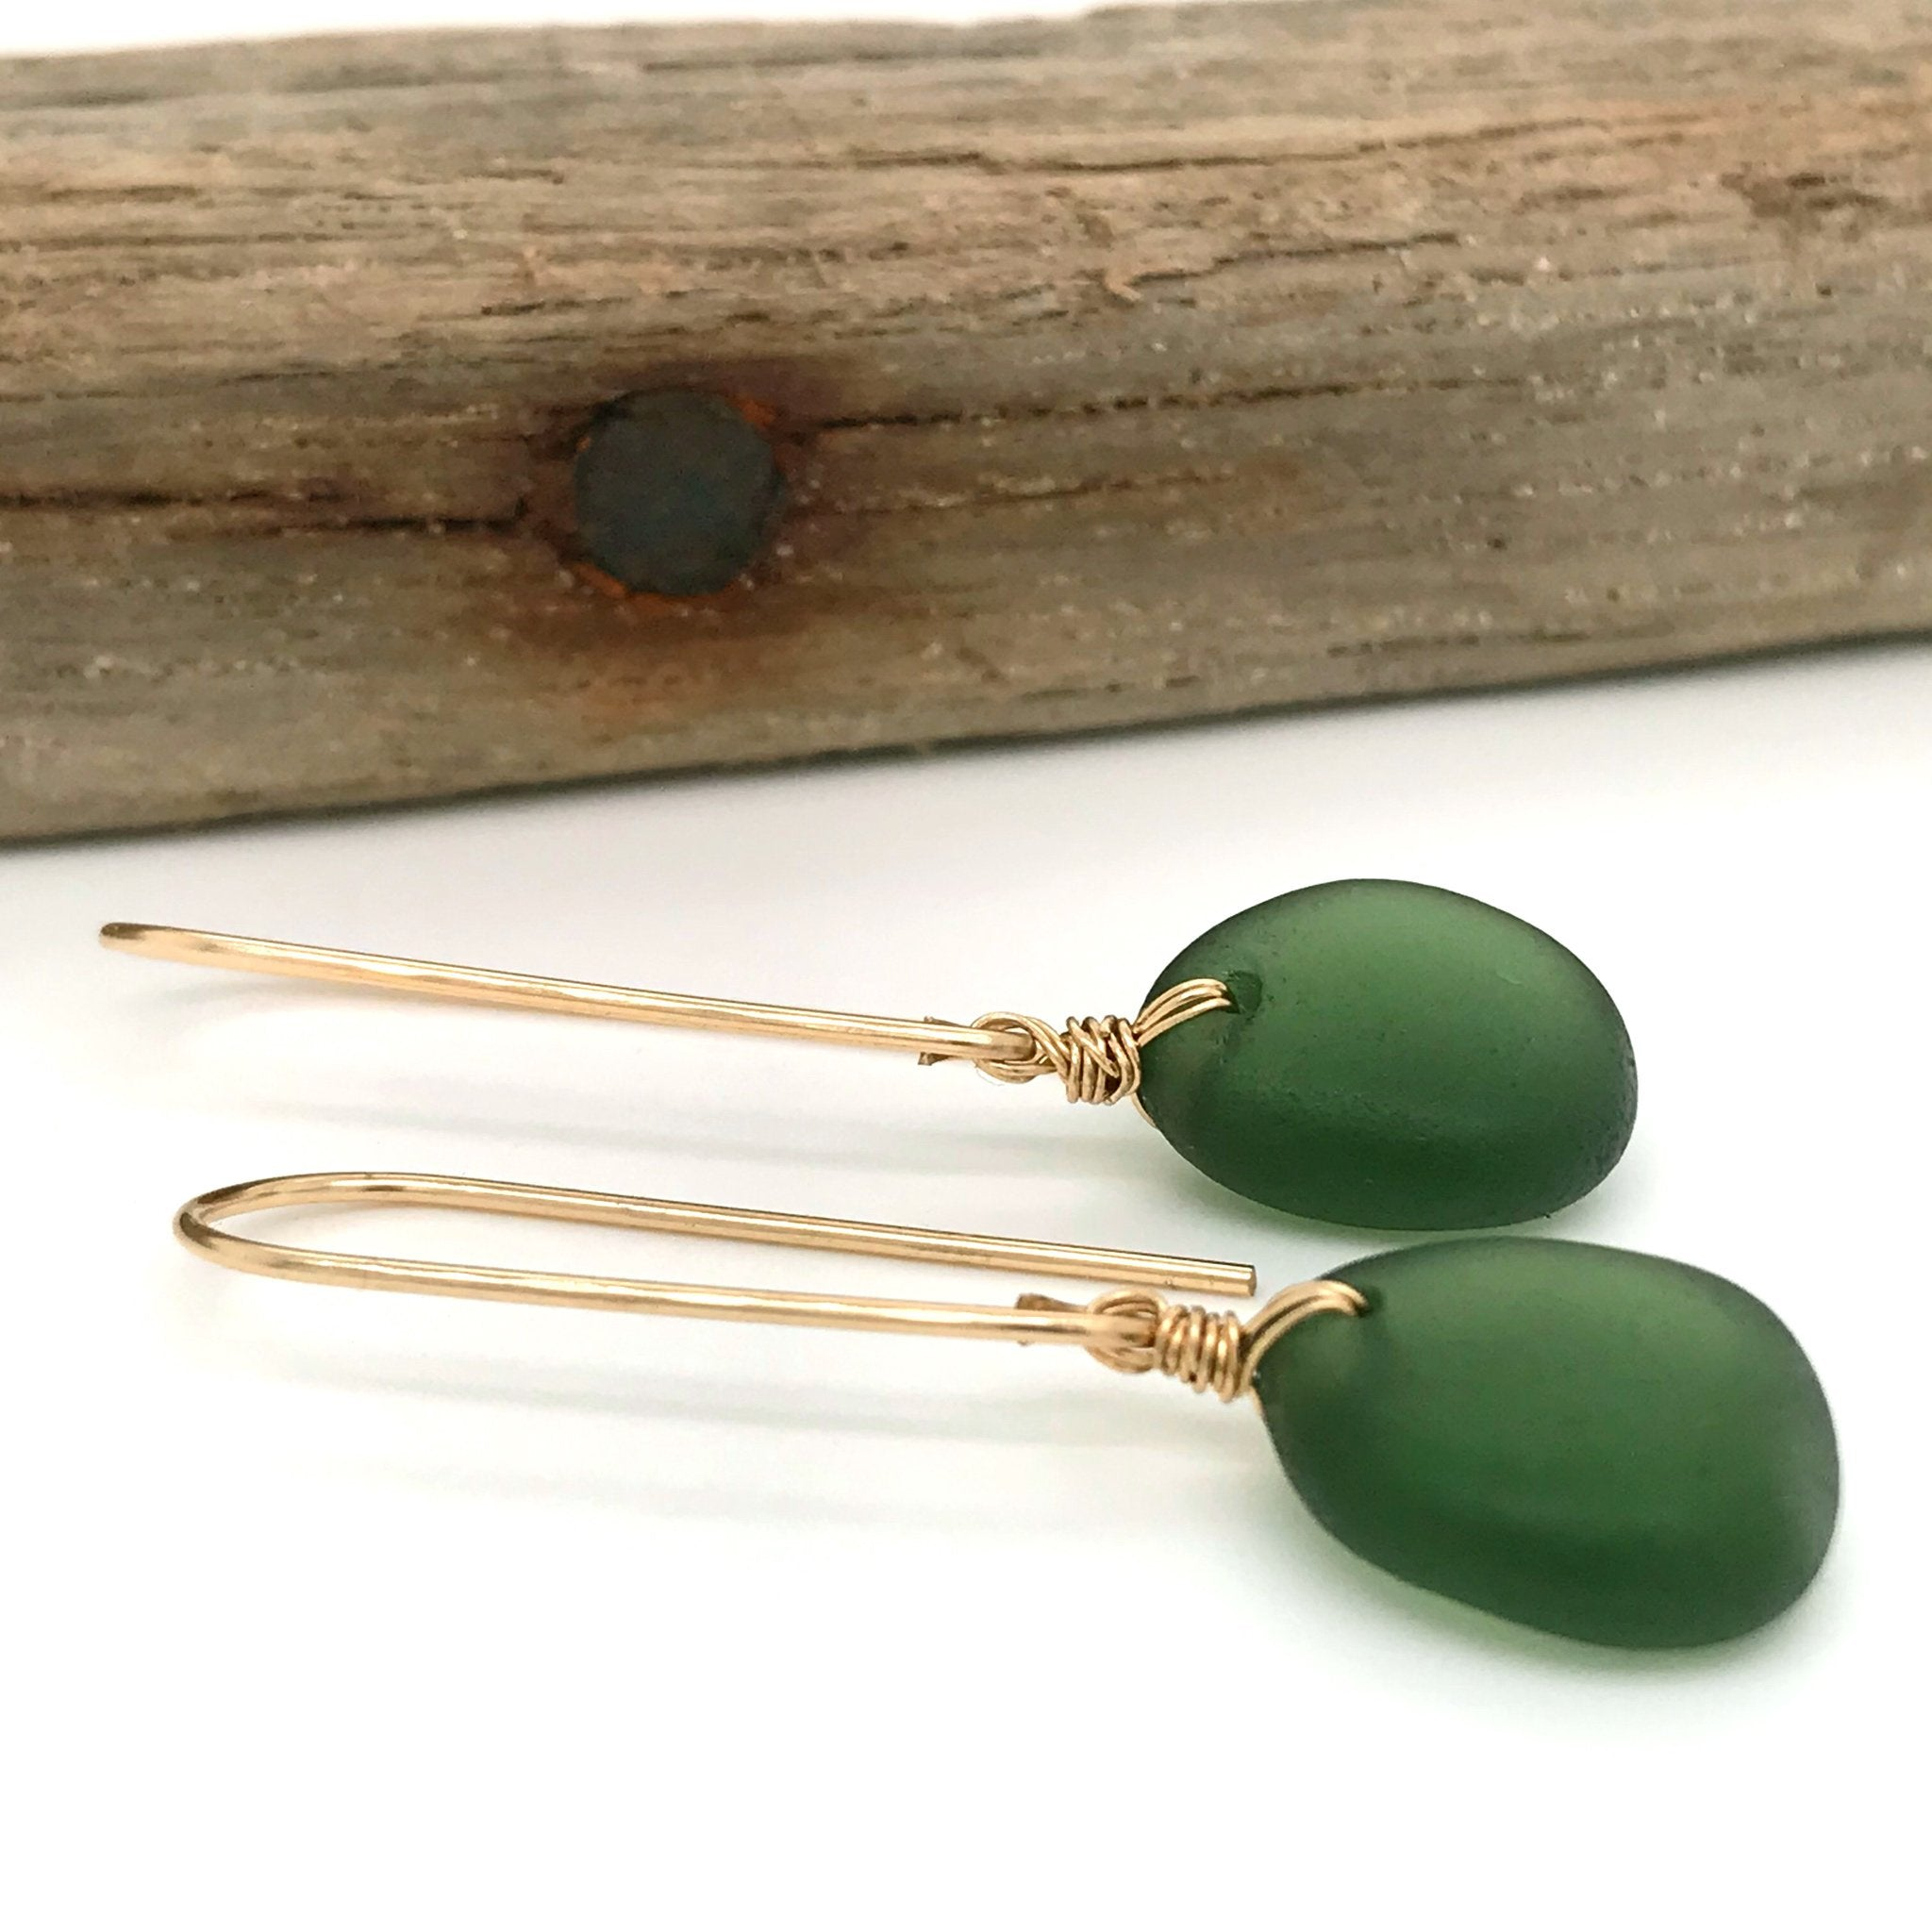 kriket broadhurst jewellery gold earrings with green seaglass